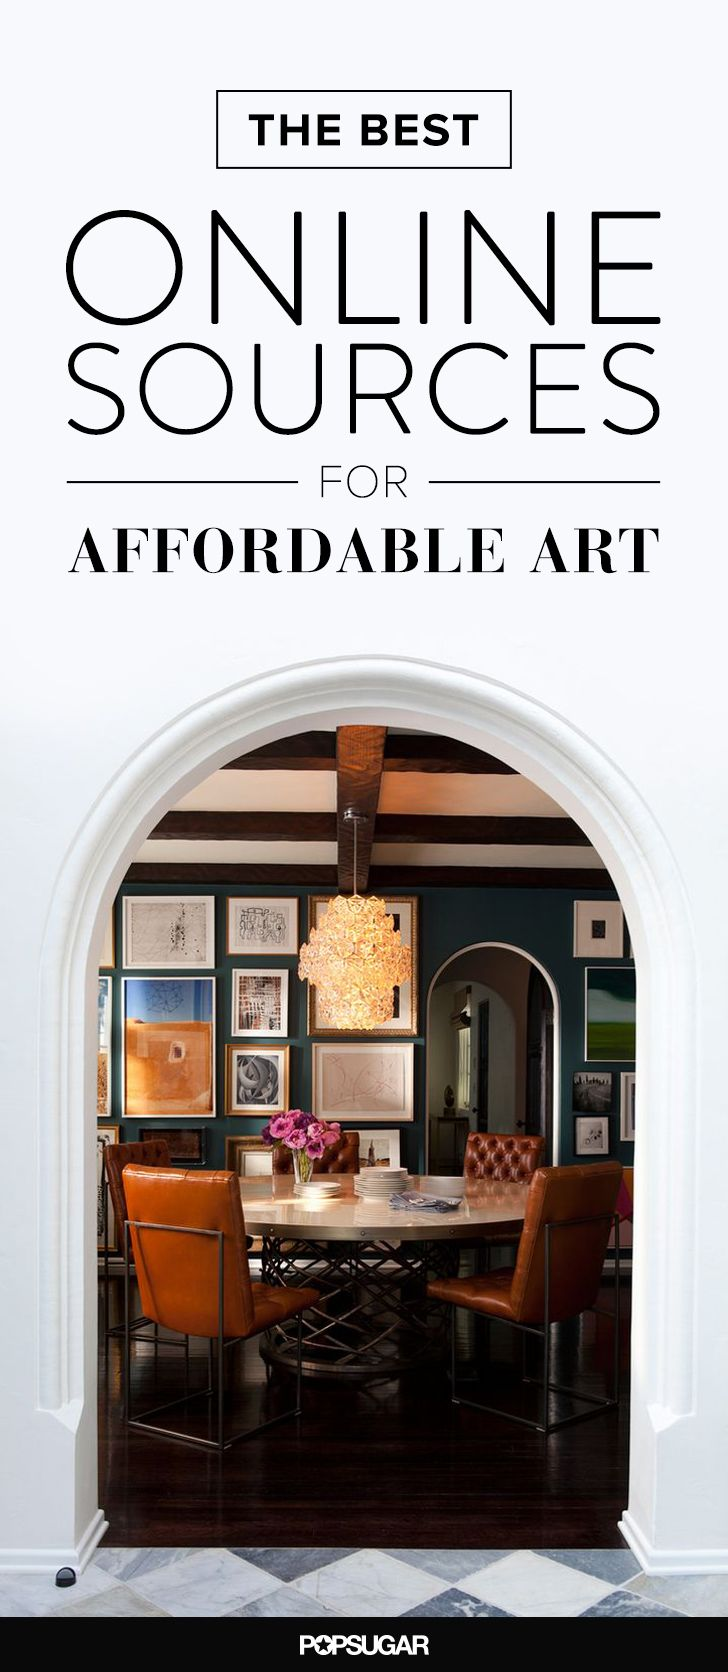 Collecting art can be an expensive habit, but these days there are plenty of places to get amazing original art for a great price. Whether you like graphic, abstract illustrations or contemporary photography, we've got a source for you.